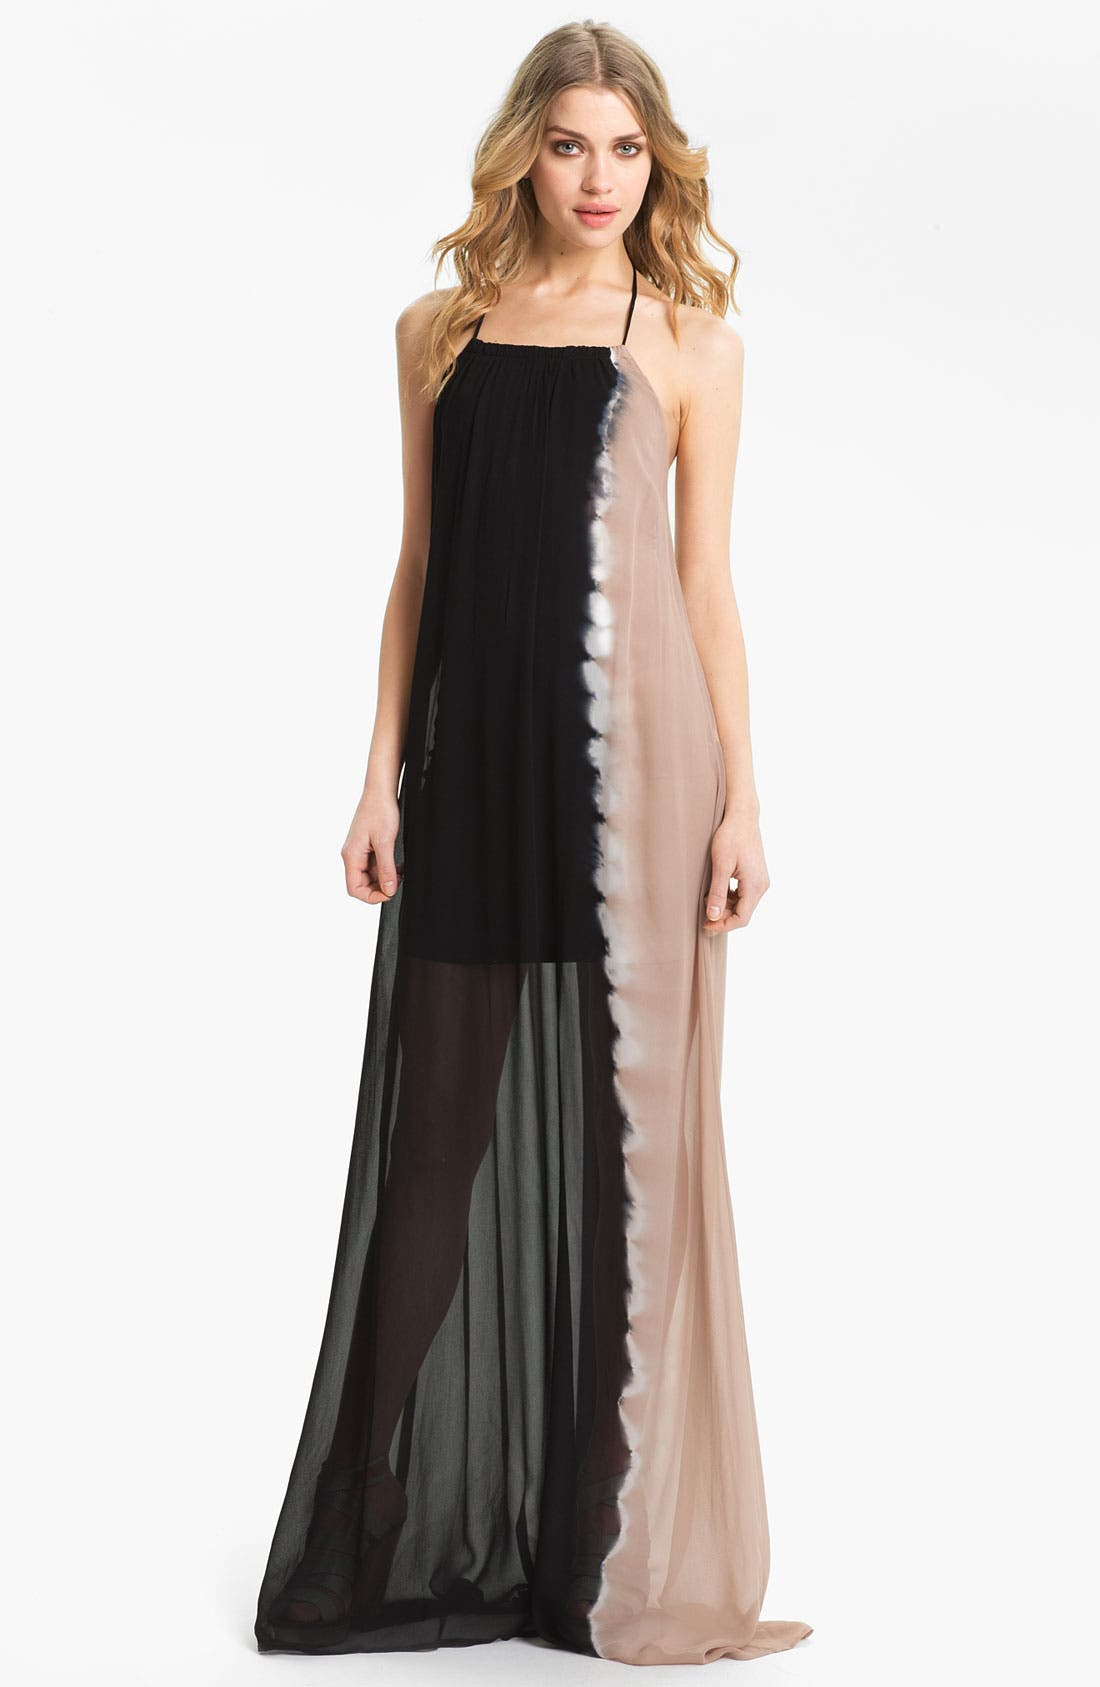 Main Image - Young, Fabulous & Broke 'Gila' Chiffon Maxi Dress